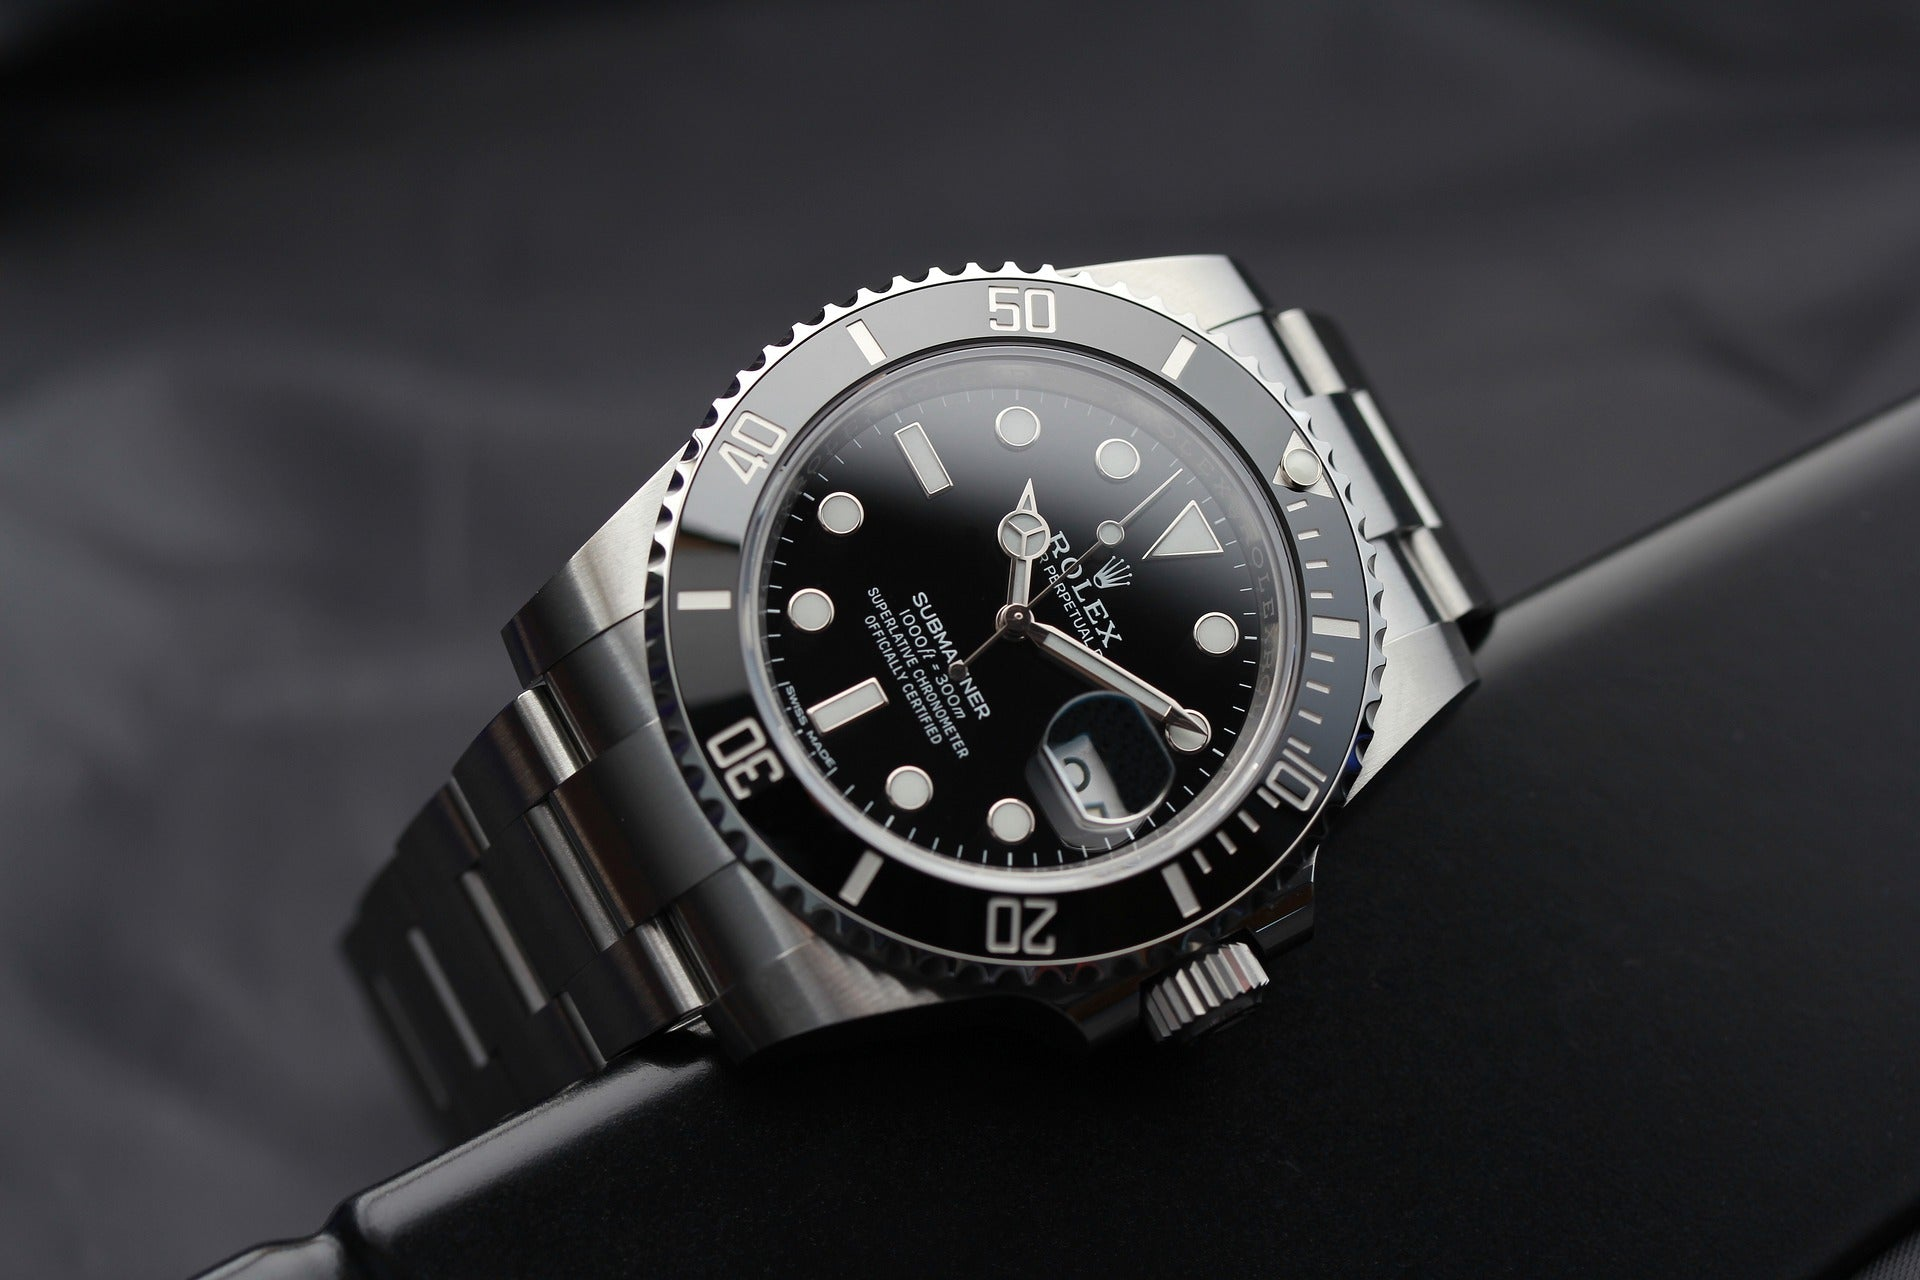 WHY ARE ROLEX WATCHES EXPENSIVE/ COSTLY?